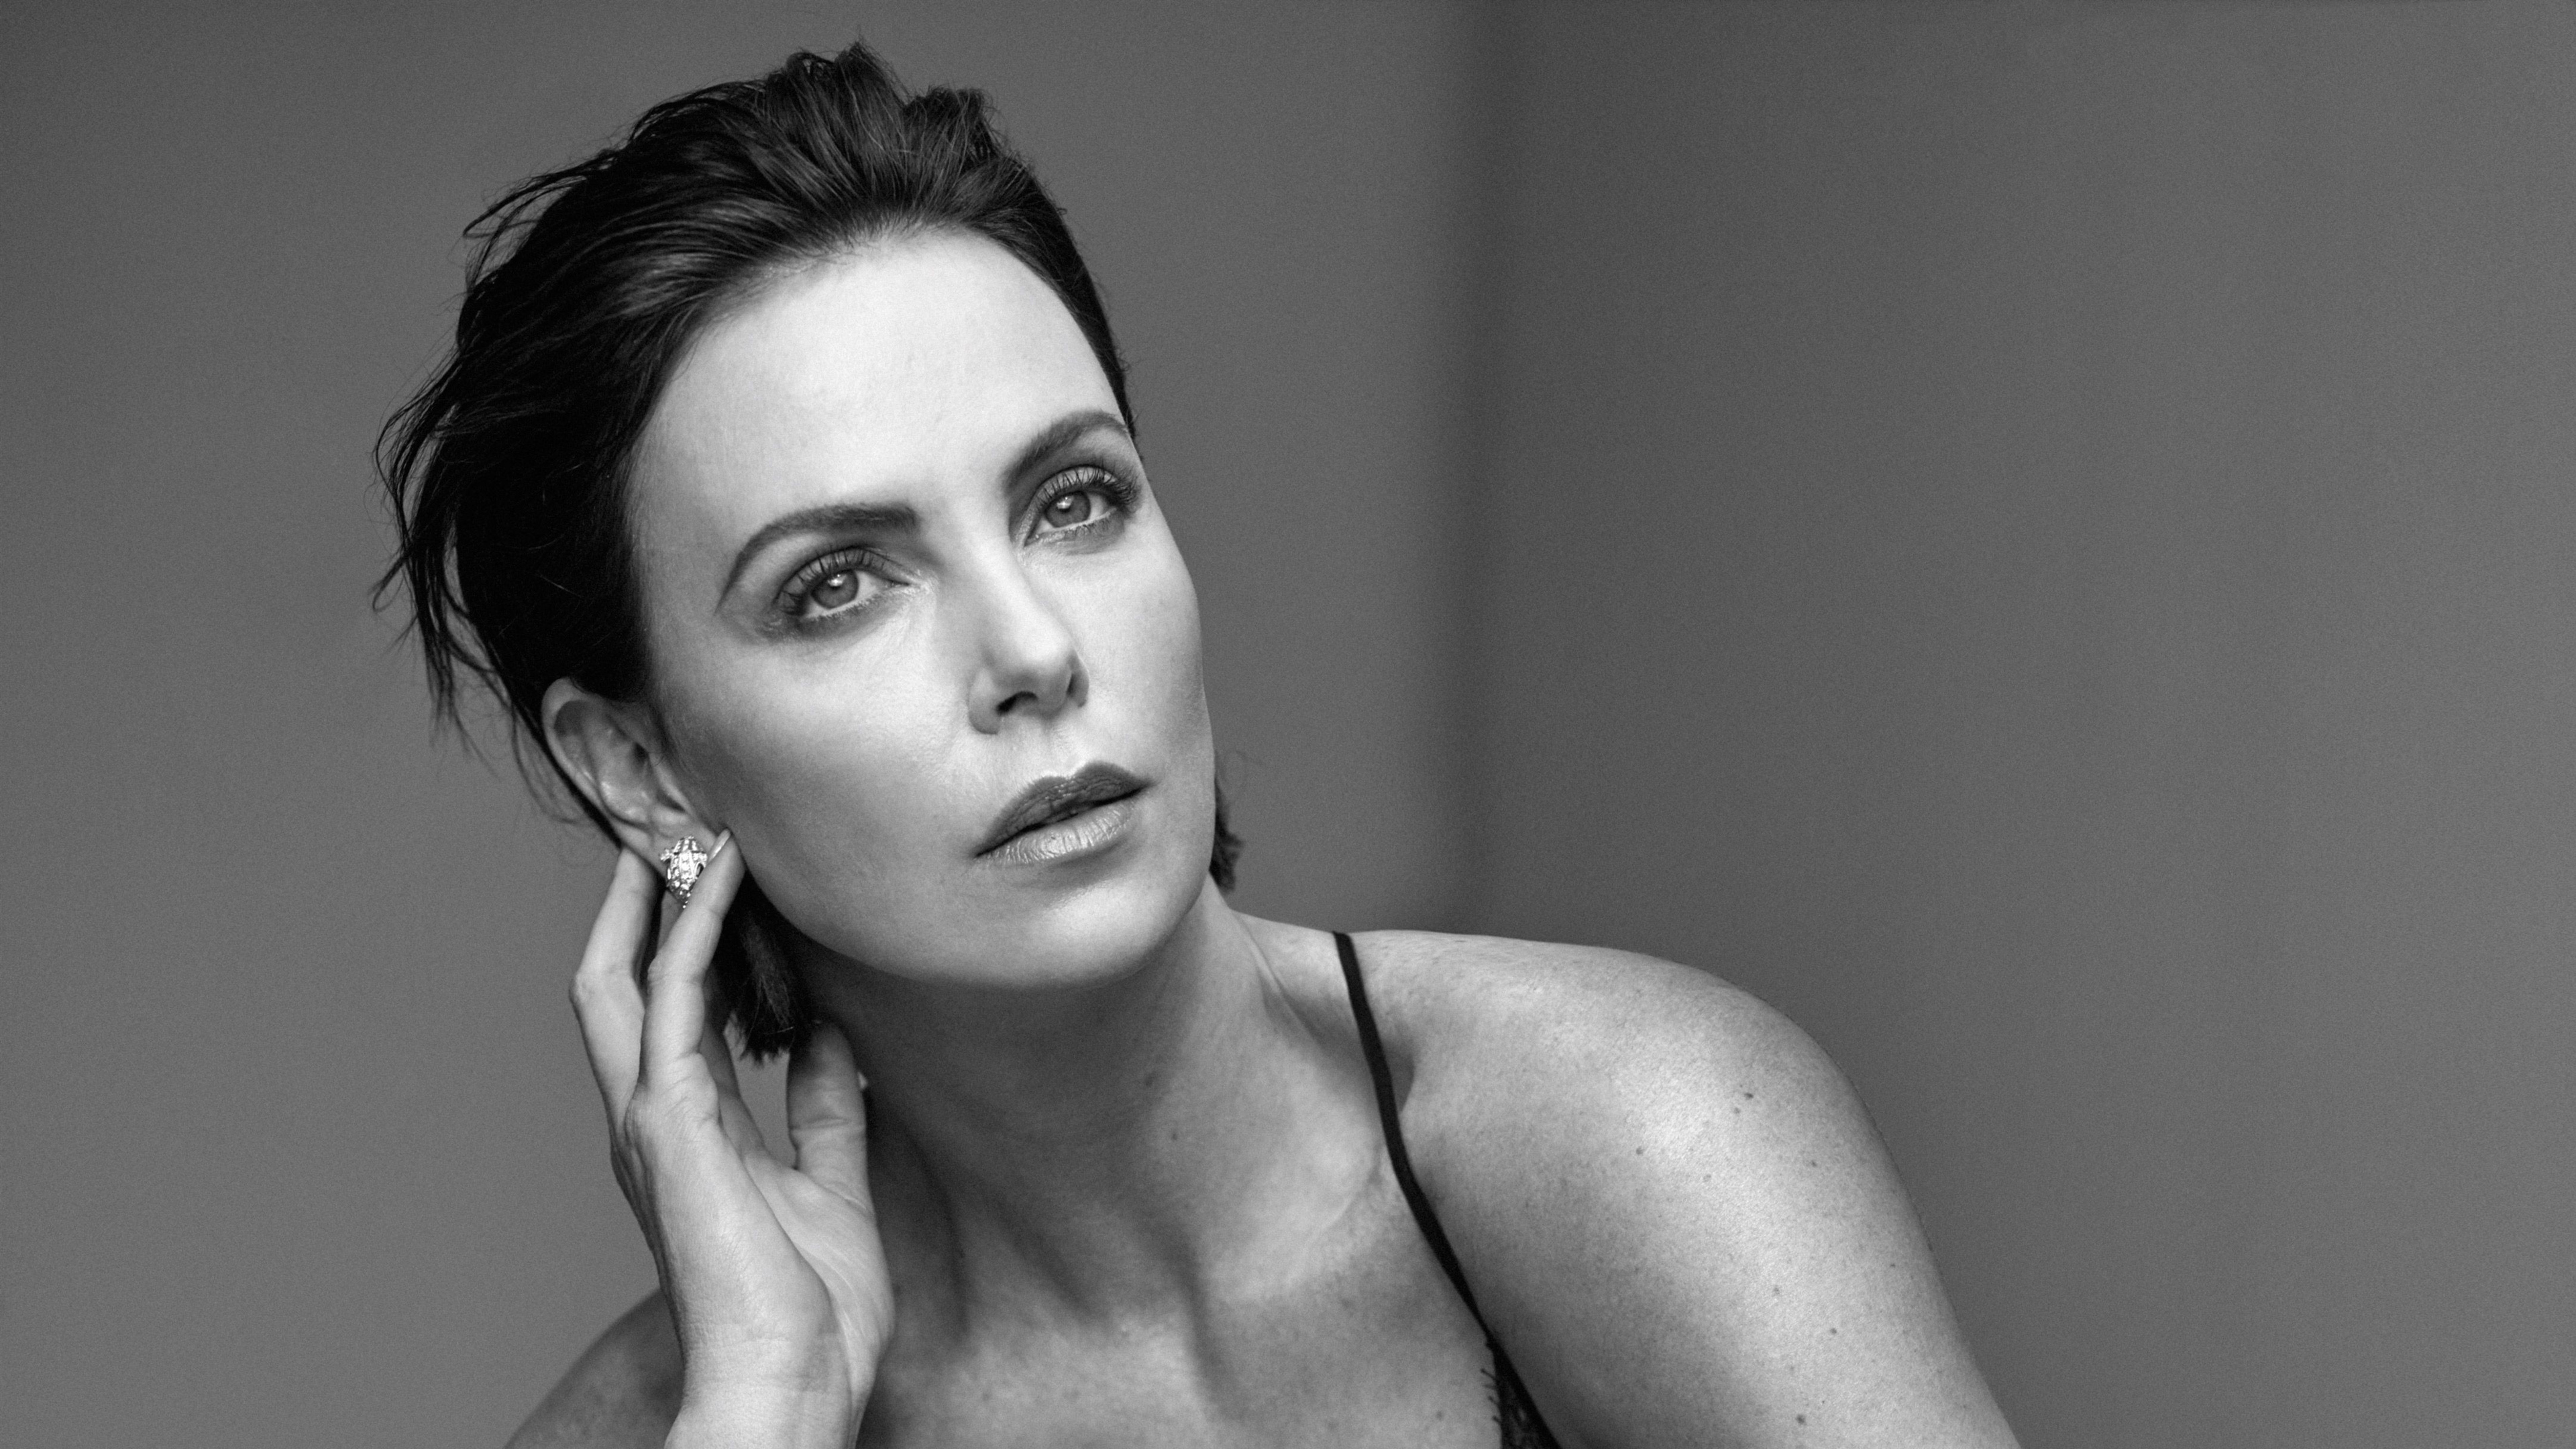 charlize theron marie claire photoshoot 2019 1558220762 - Charlize Theron Marie Claire Photoshoot 2019 - photoshoot wallpapers, monochrome wallpapers, hd-wallpapers, girls wallpapers, charlize theron wallpapers, celebrities wallpapers, black and white wallpapers, 4k-wallpapers